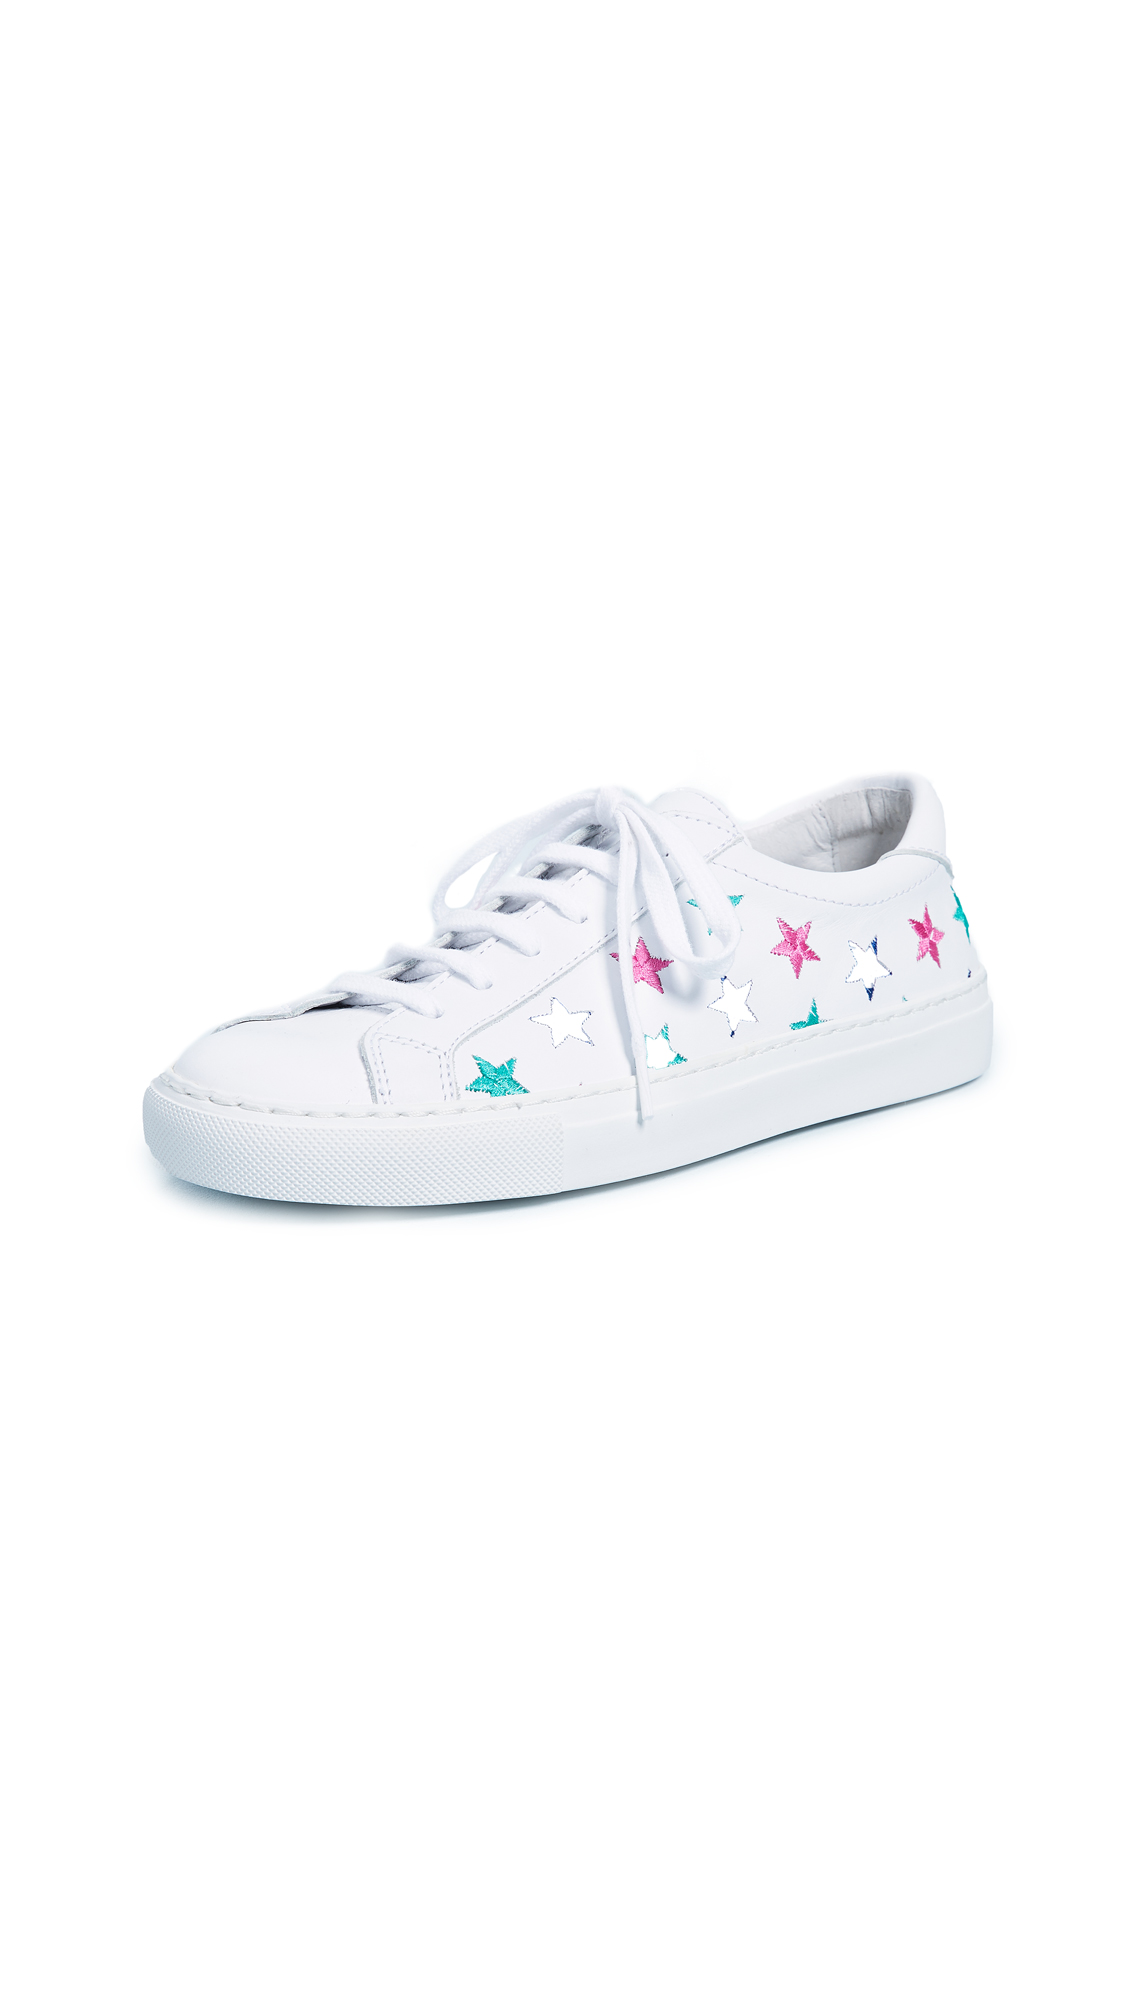 South Parade Stars Leather Lace Up Sneakers - White/Multi